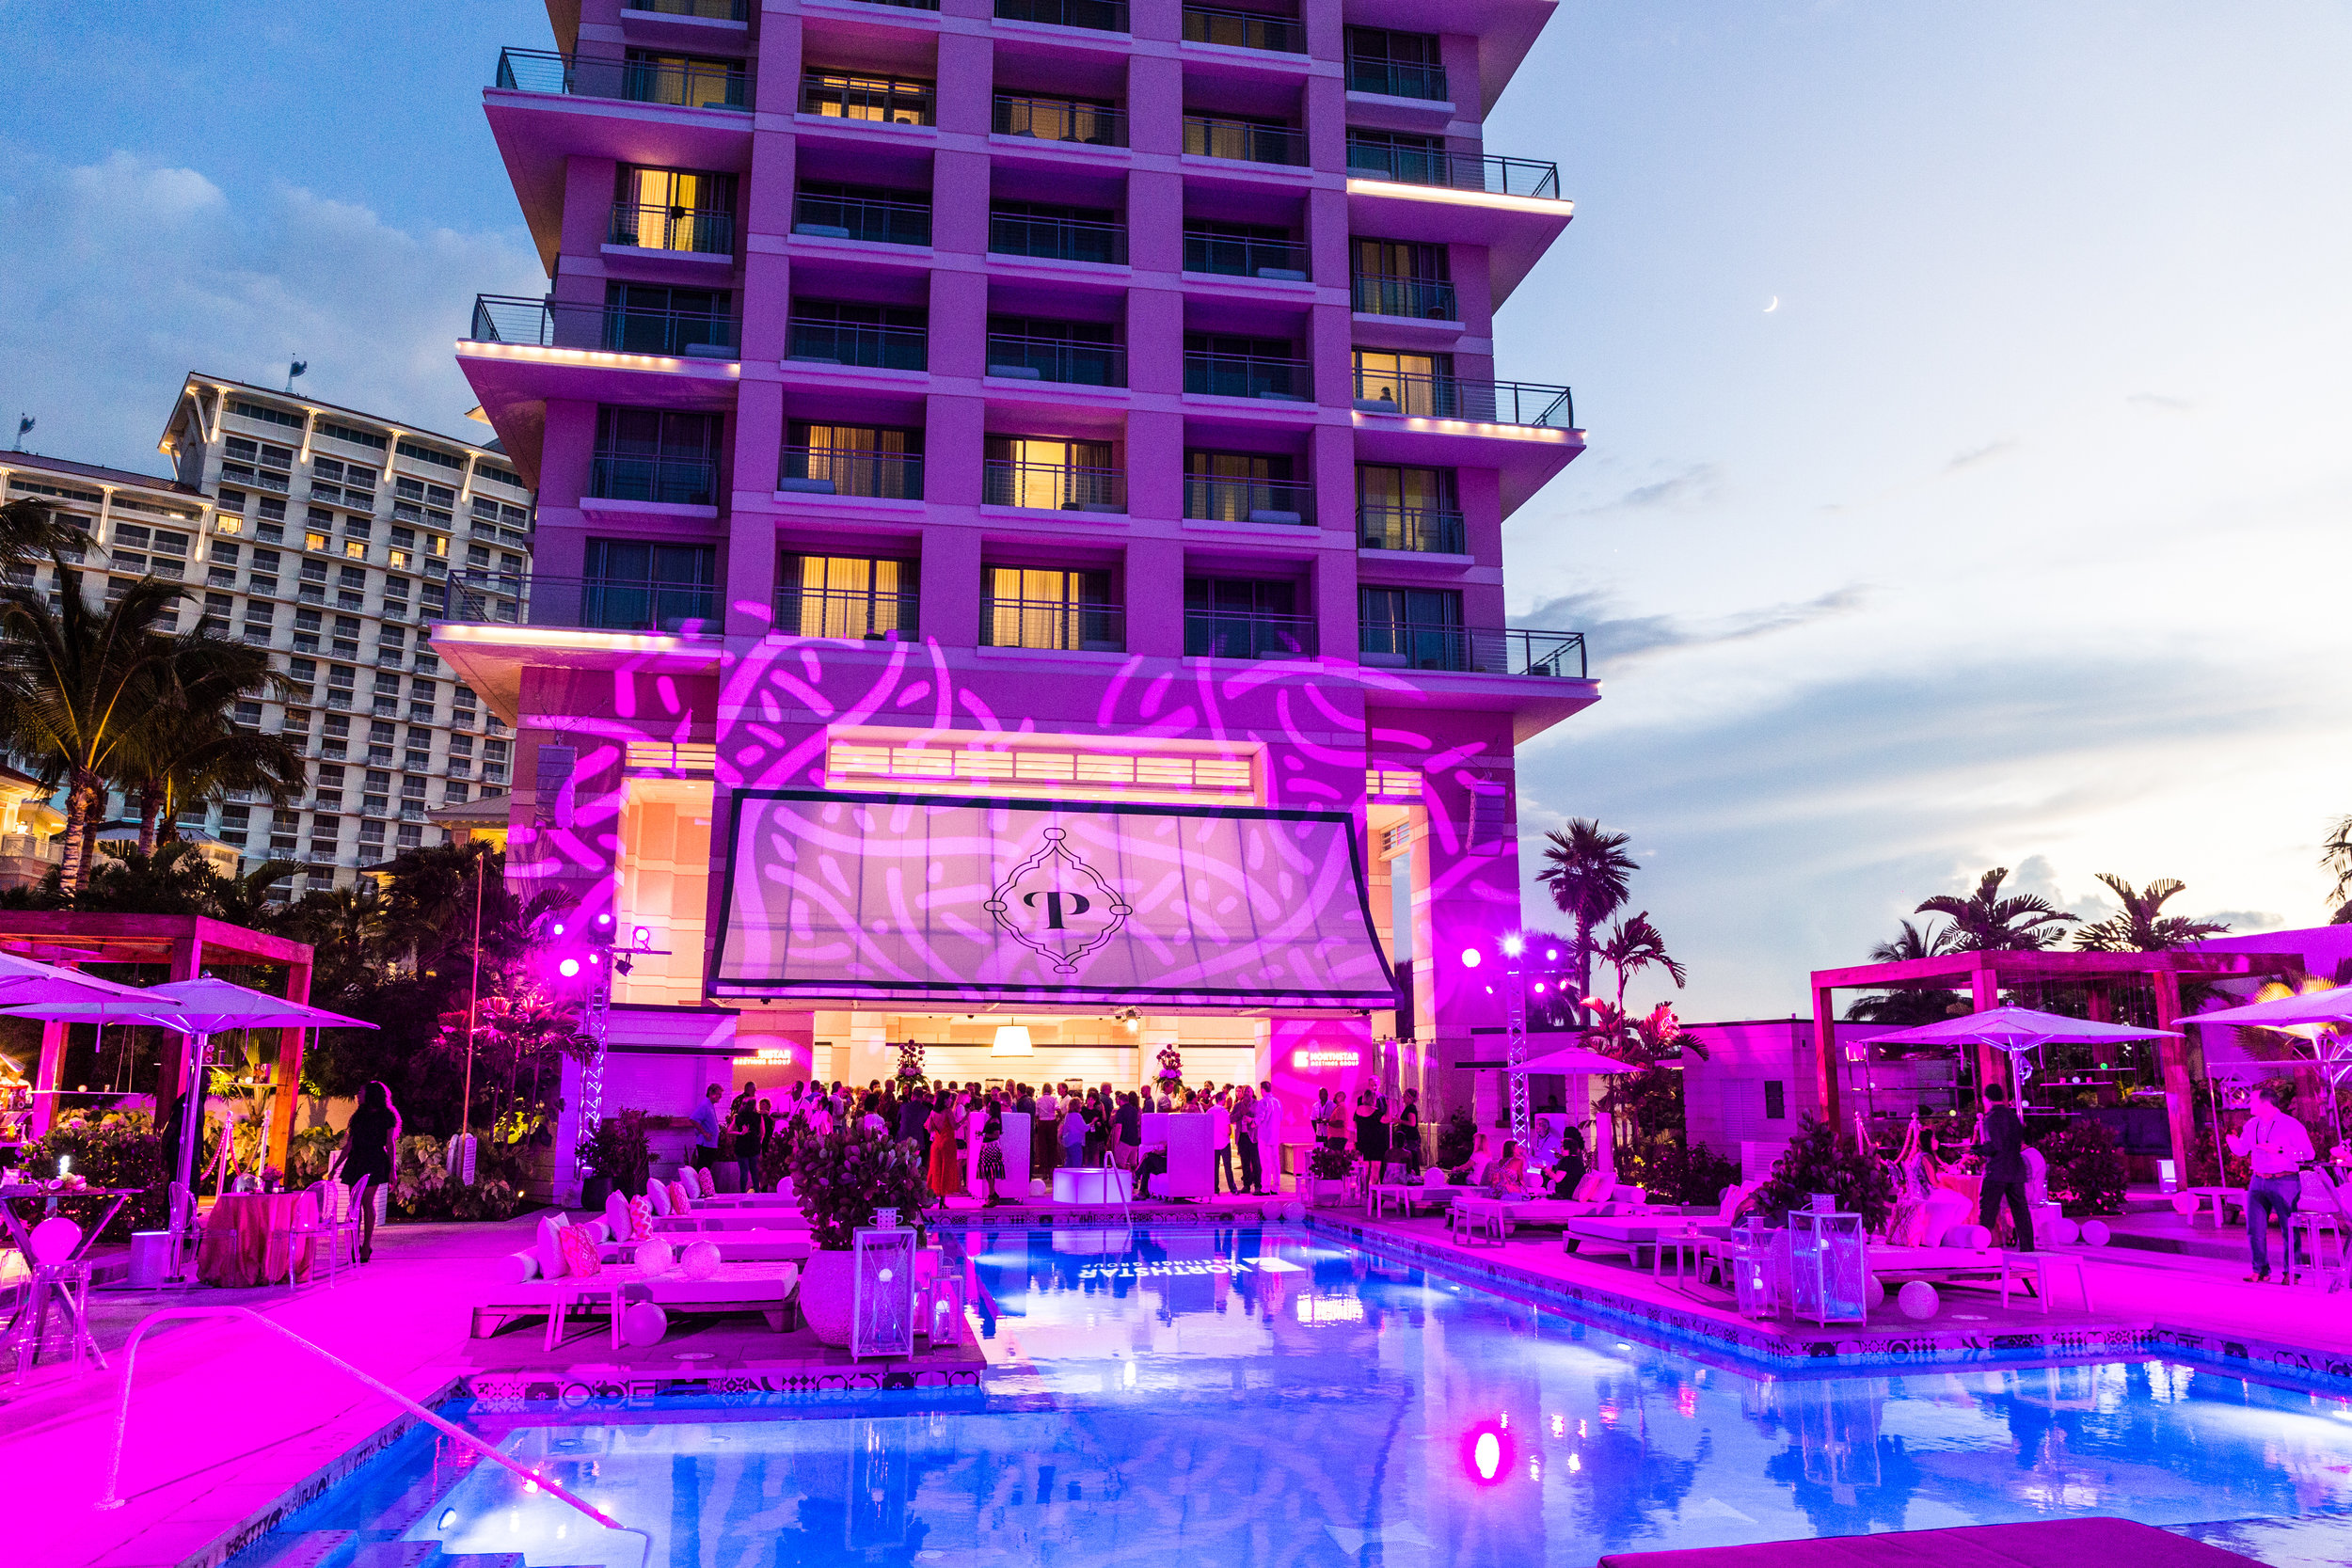 Privilege Pool, SLS welcomes attendees for Destination Caribbean 2018